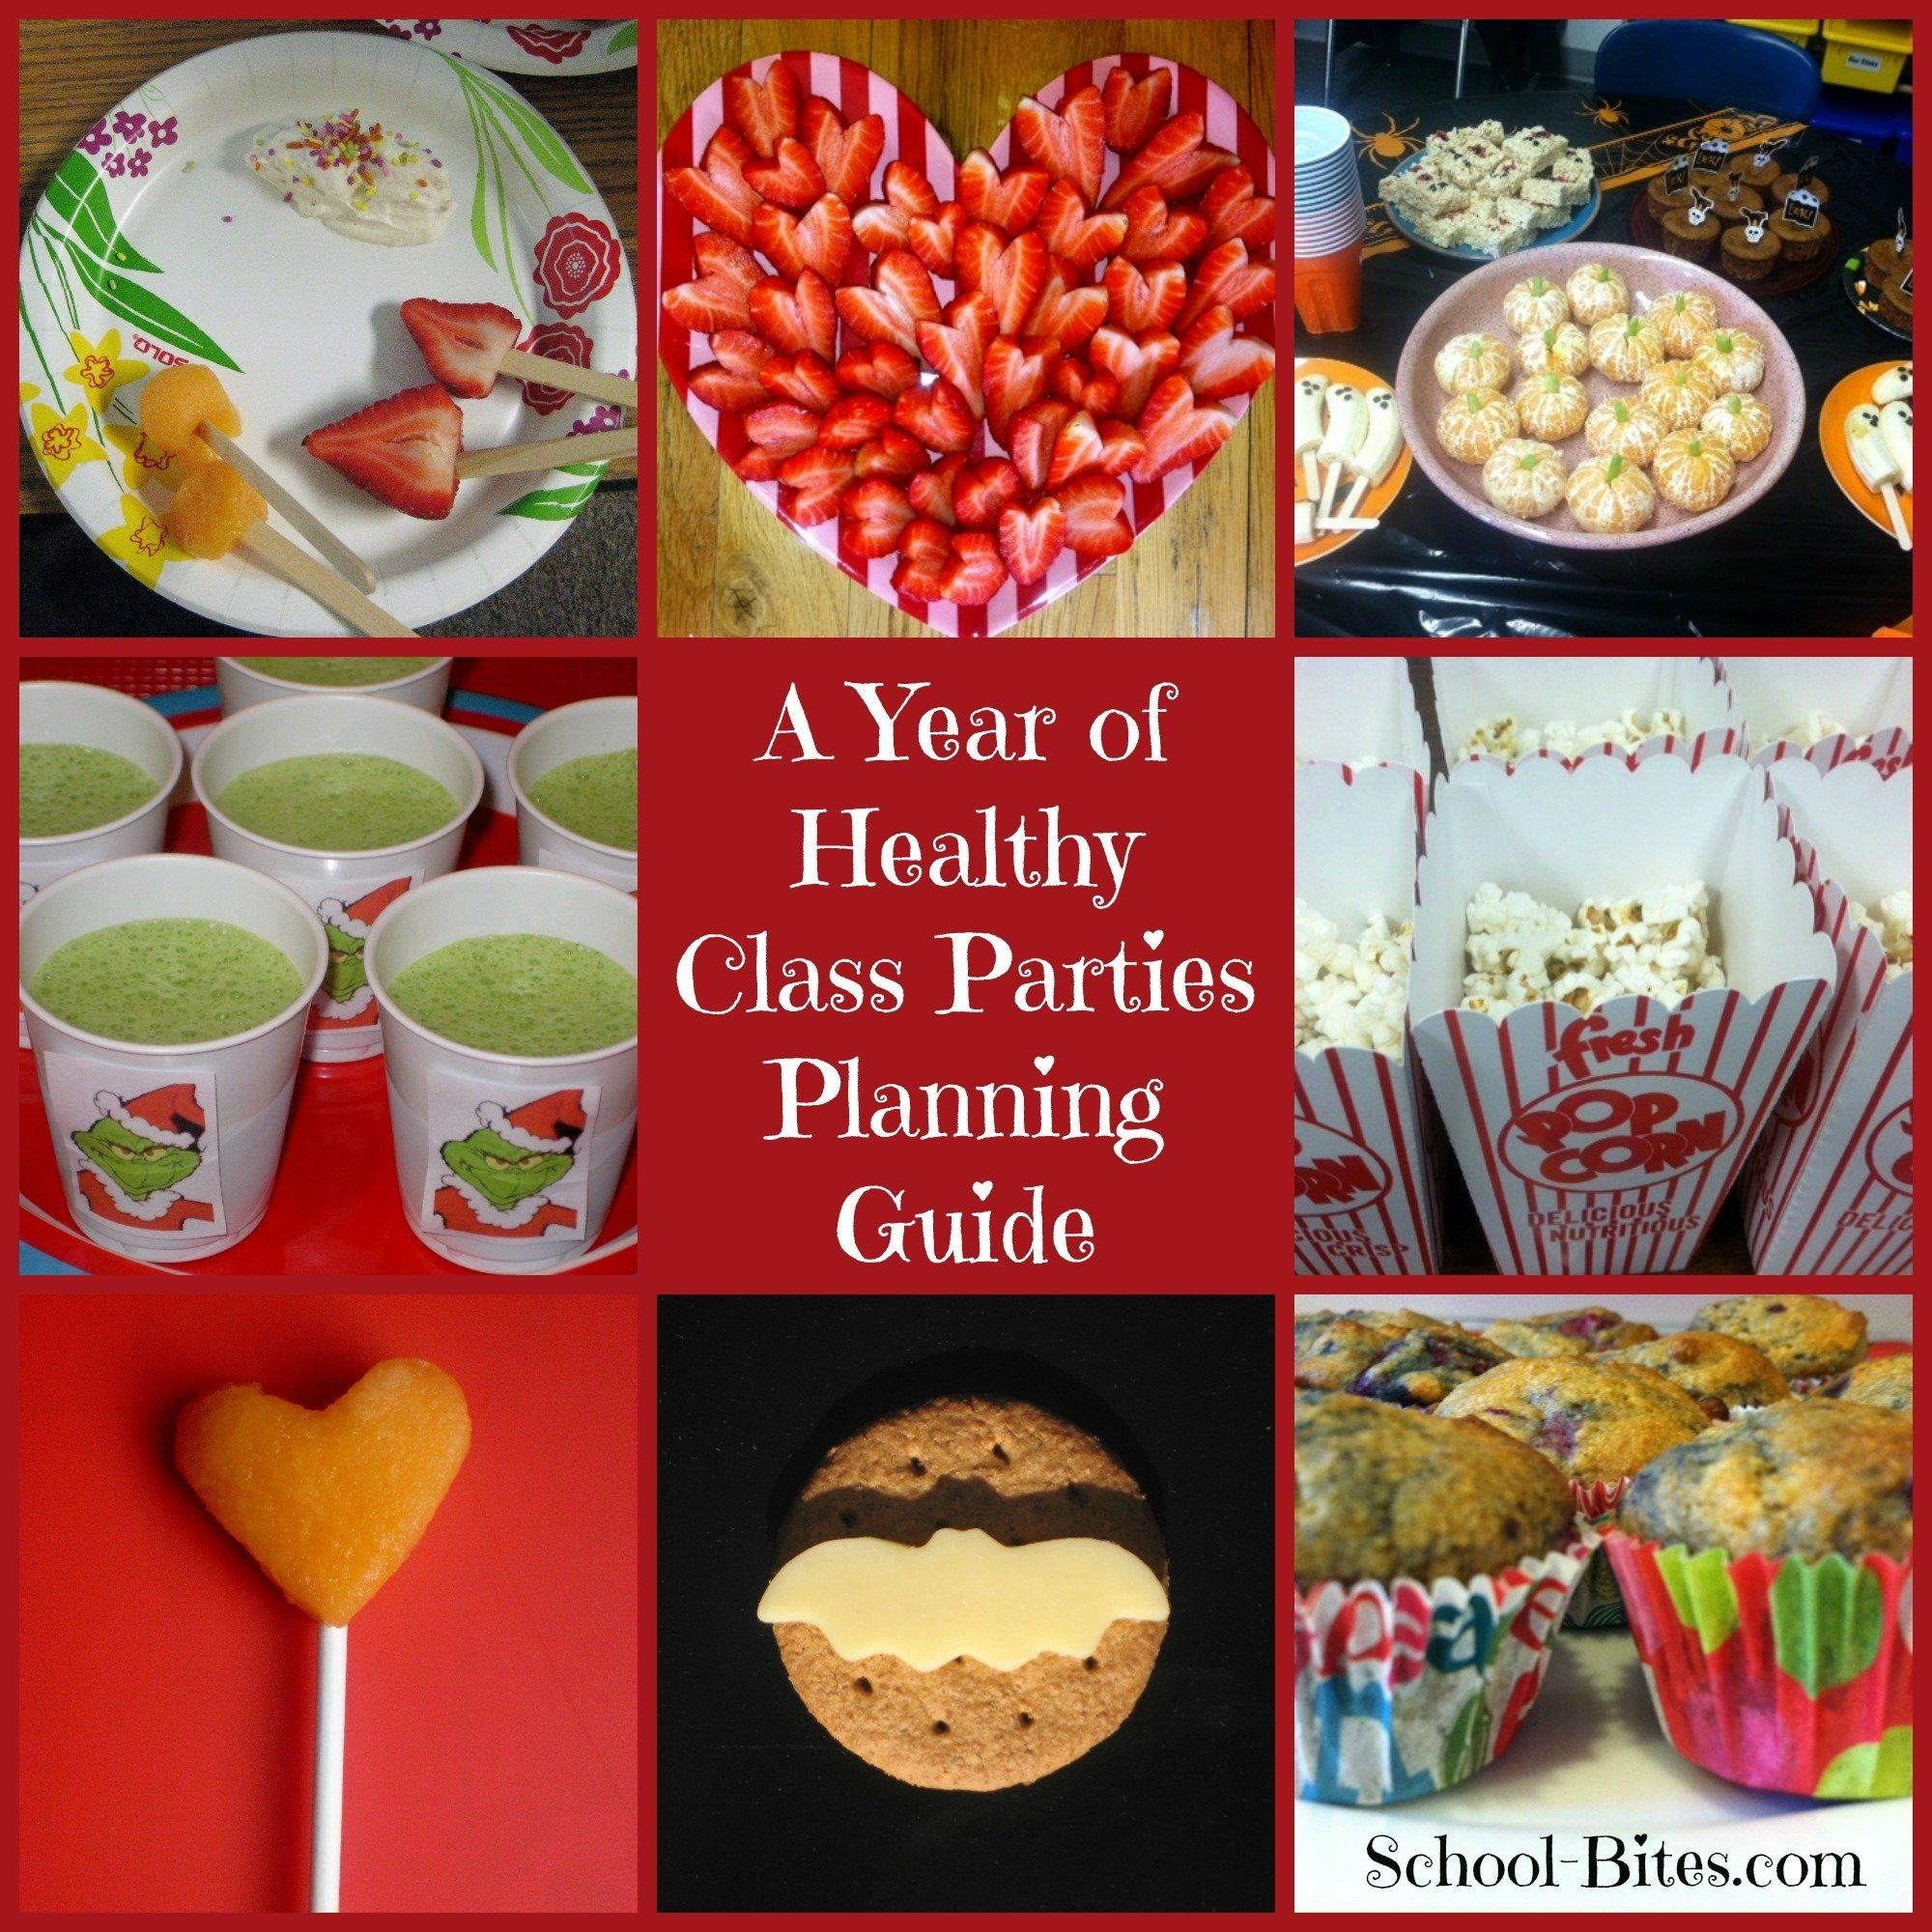 10 Attractive Snack Ideas For A Party a year of healthy class parties a planning guide for parents 1 2020